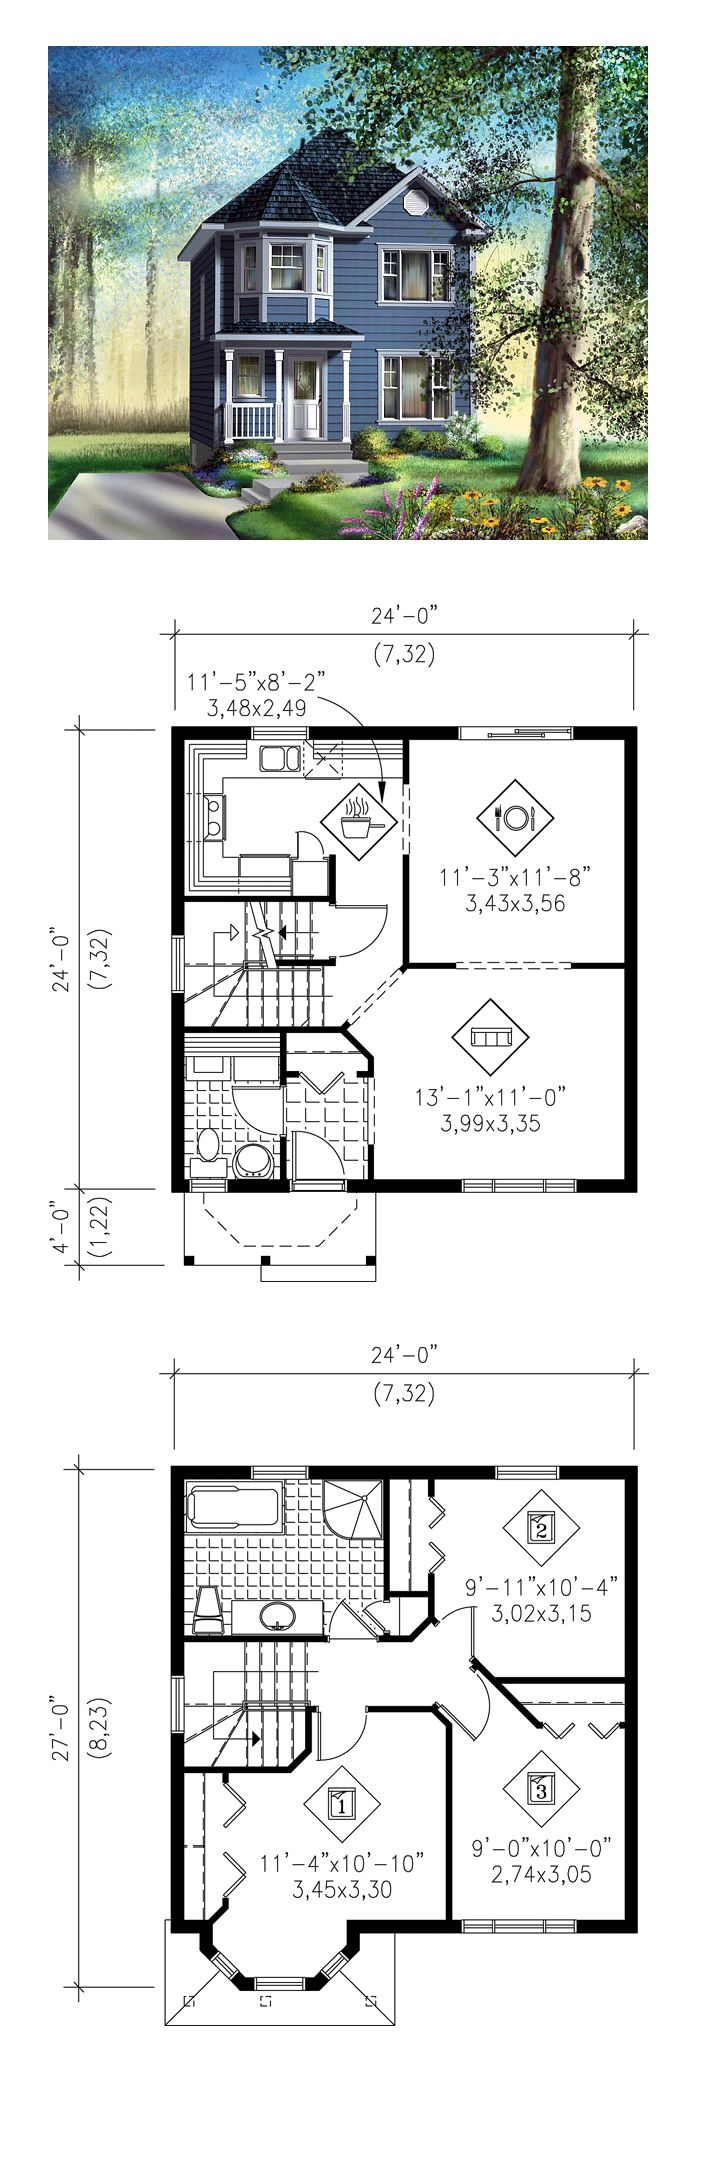 Best 25 victorian house plans ideas on pinterest sims for 3 story victorian house floor plans